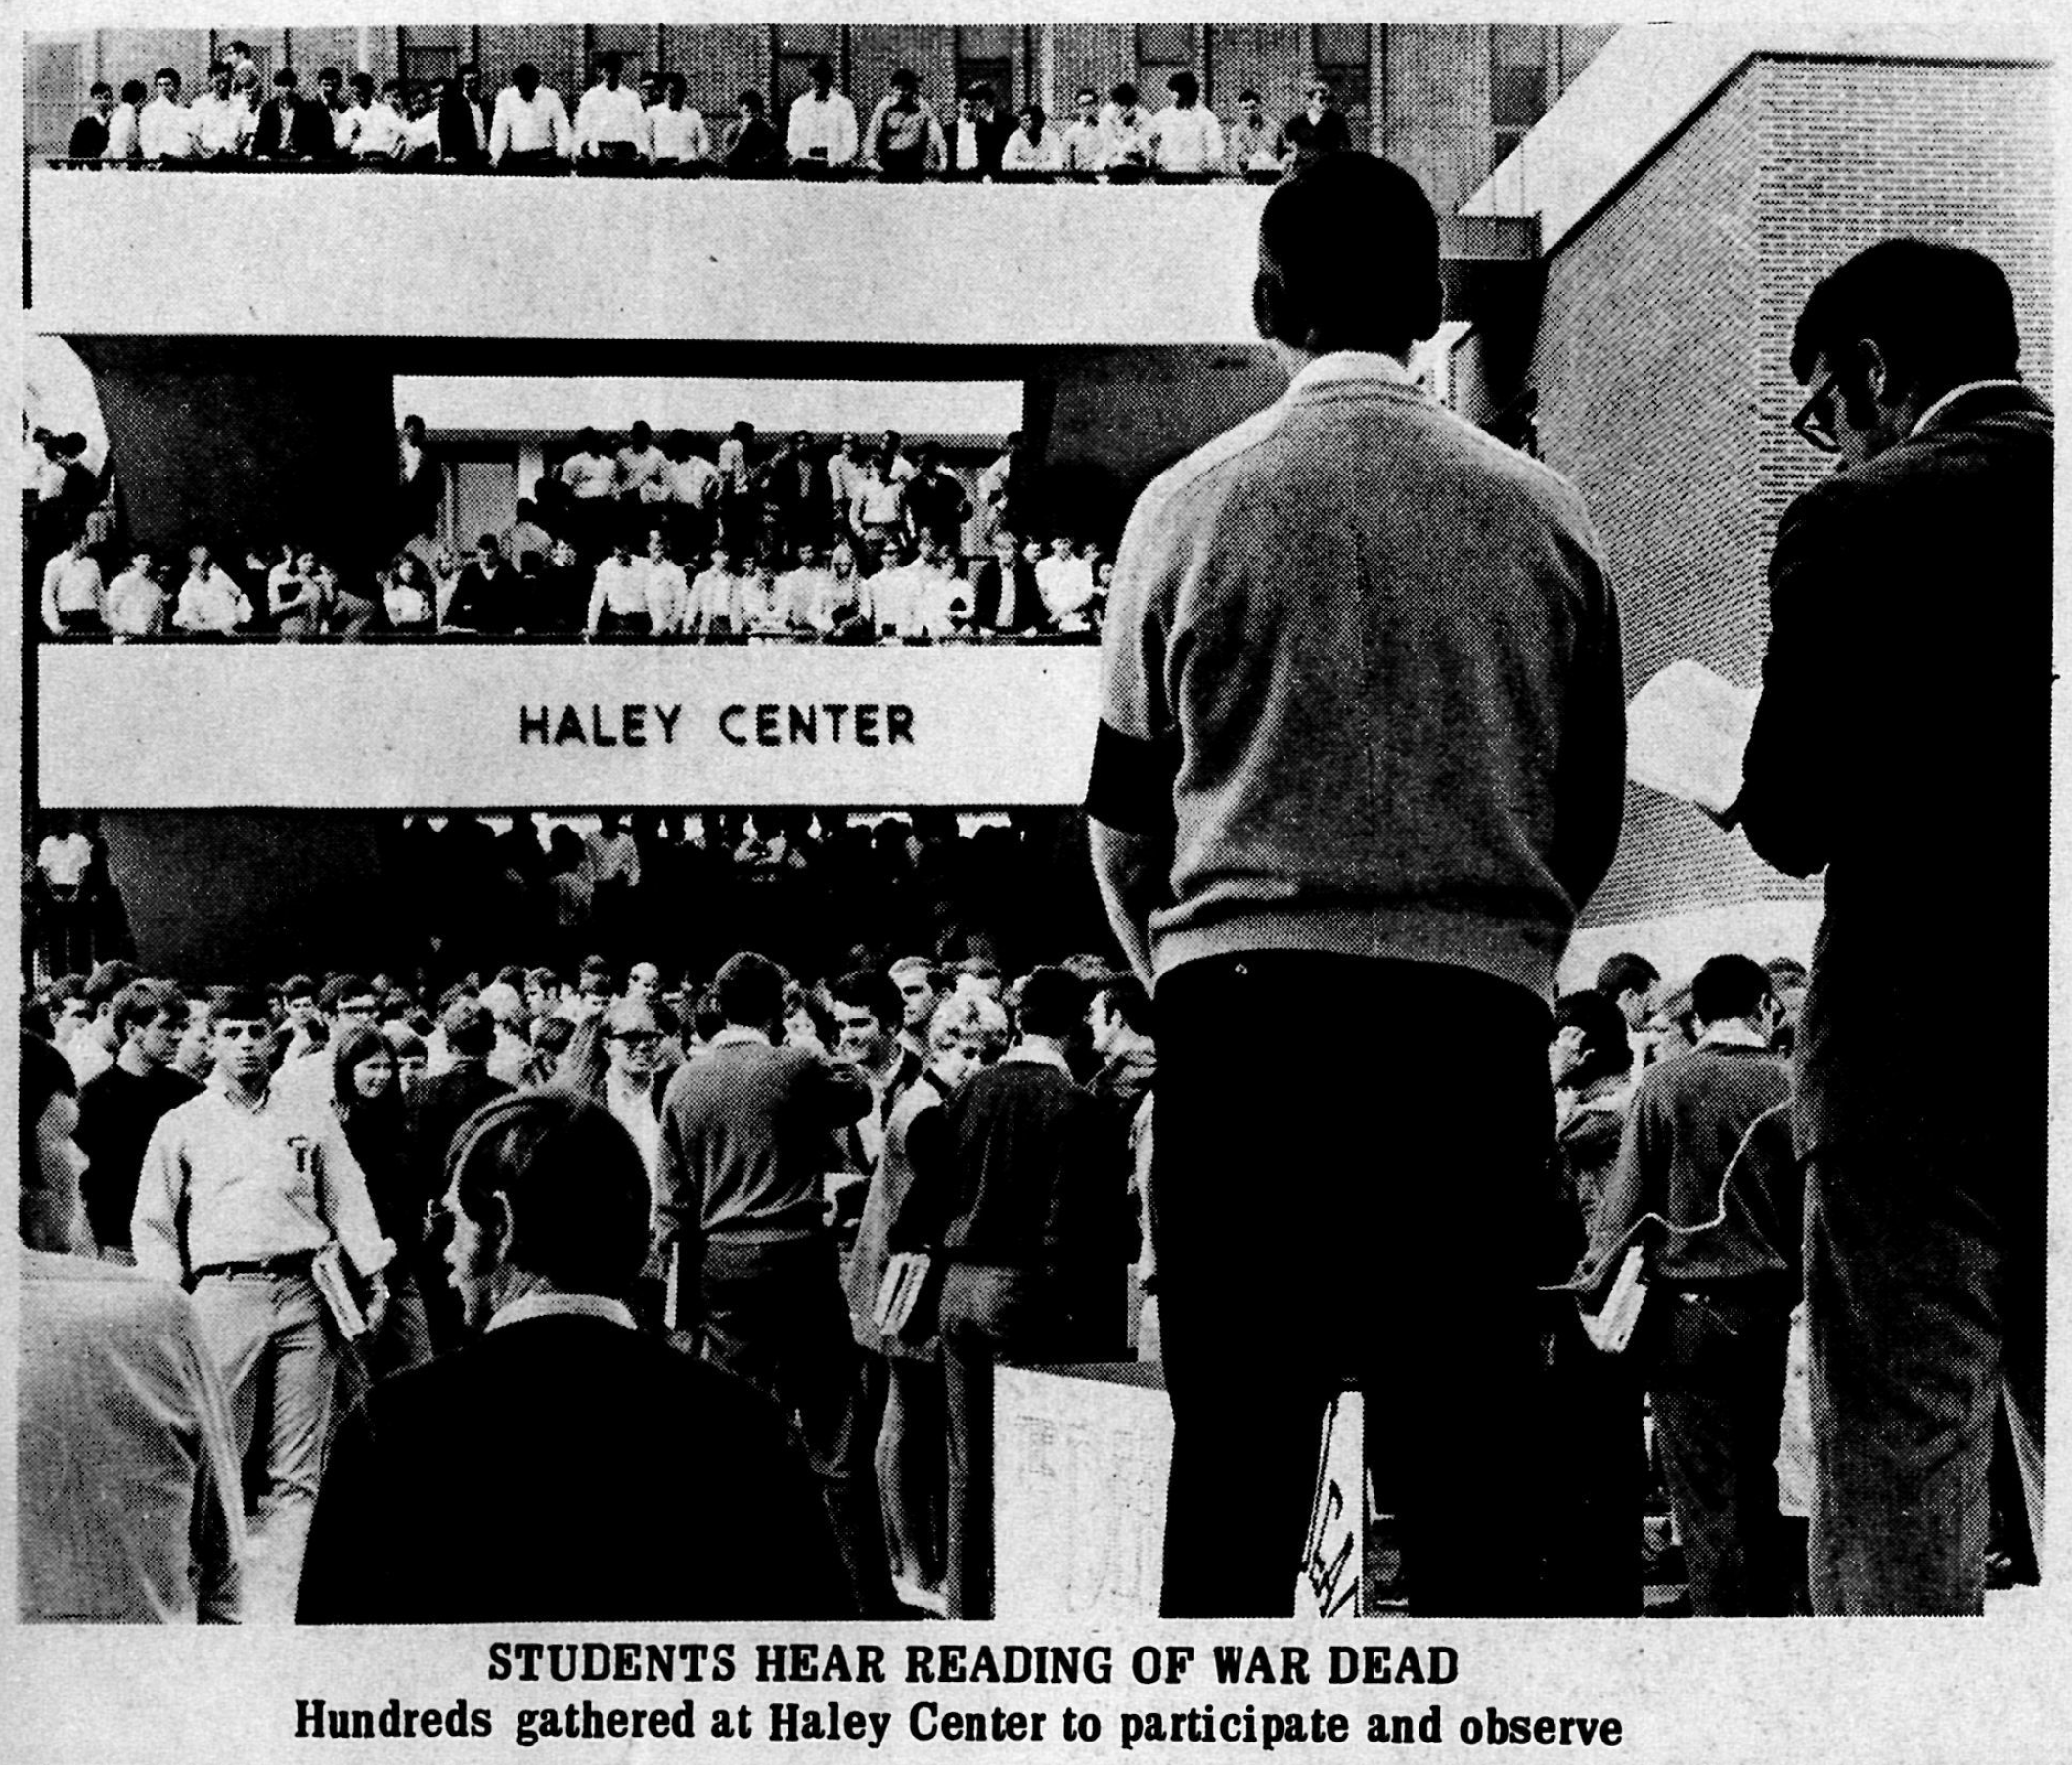 Students Hear Reading of War Dead, Hundreds gathered at Haley Center to participate and observe